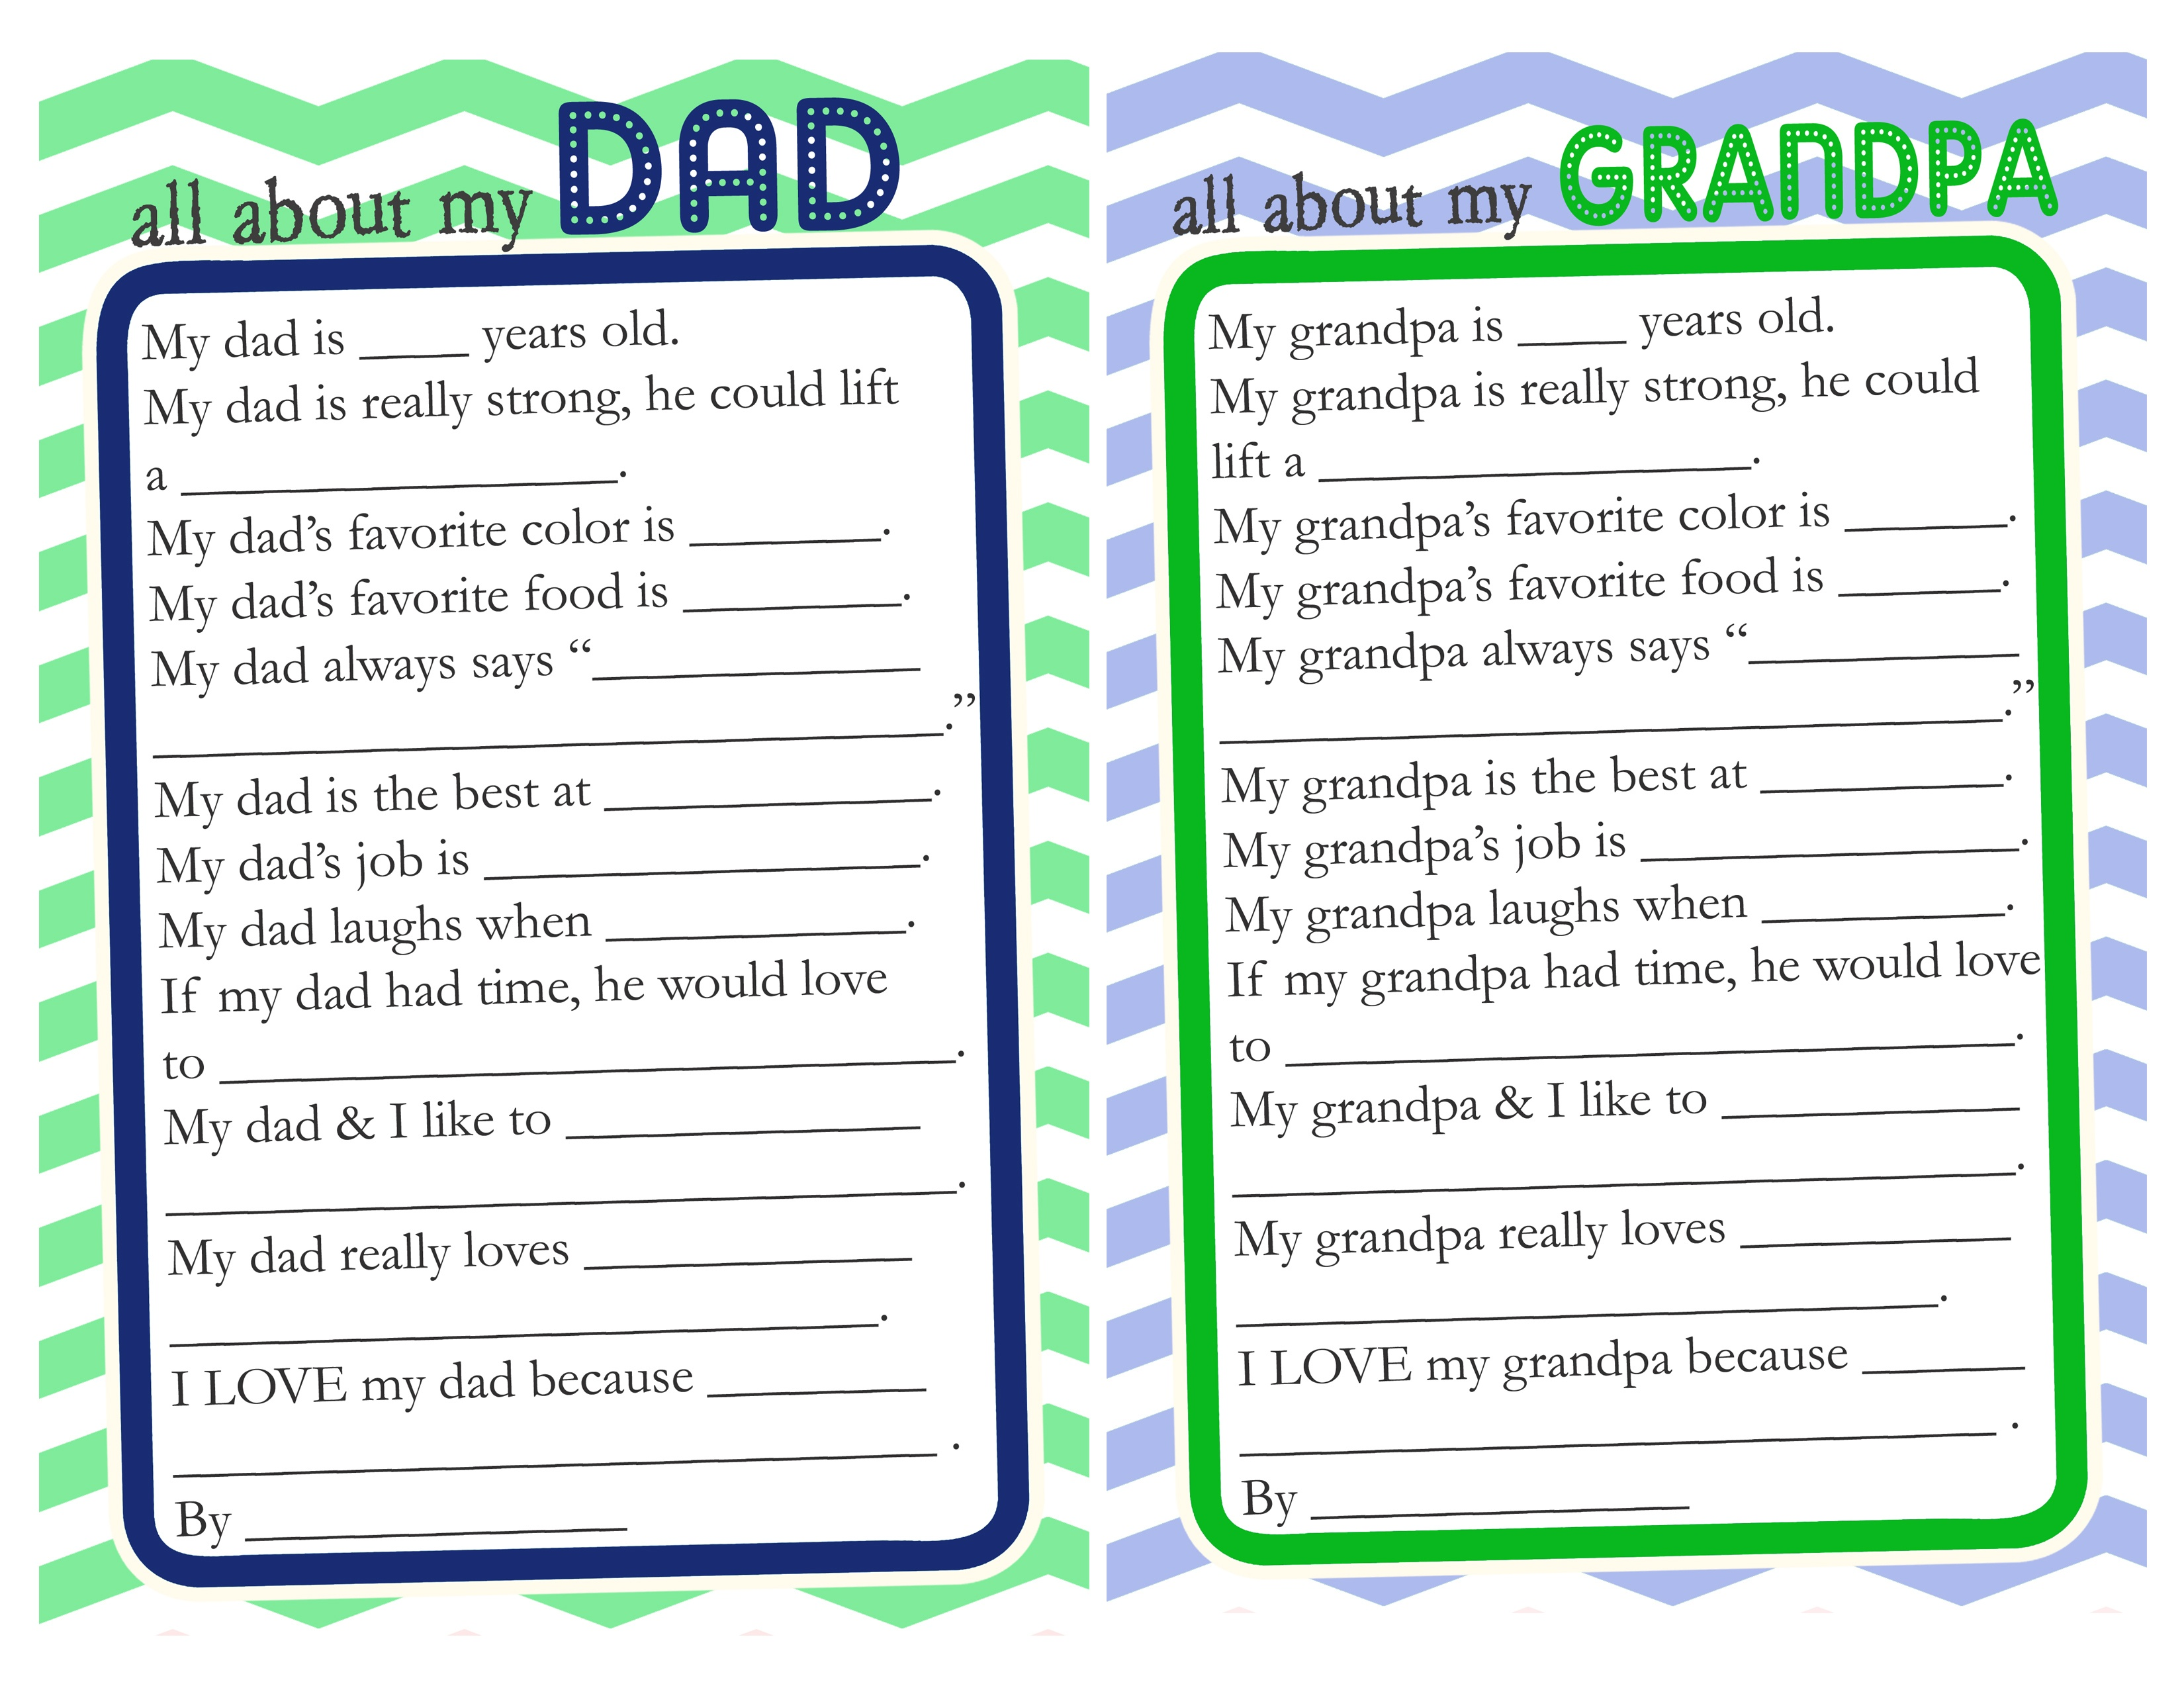 Father's Day Questionnaire & Free Printable - The Crafting Chicks - Free Printable Dad Questionnaire